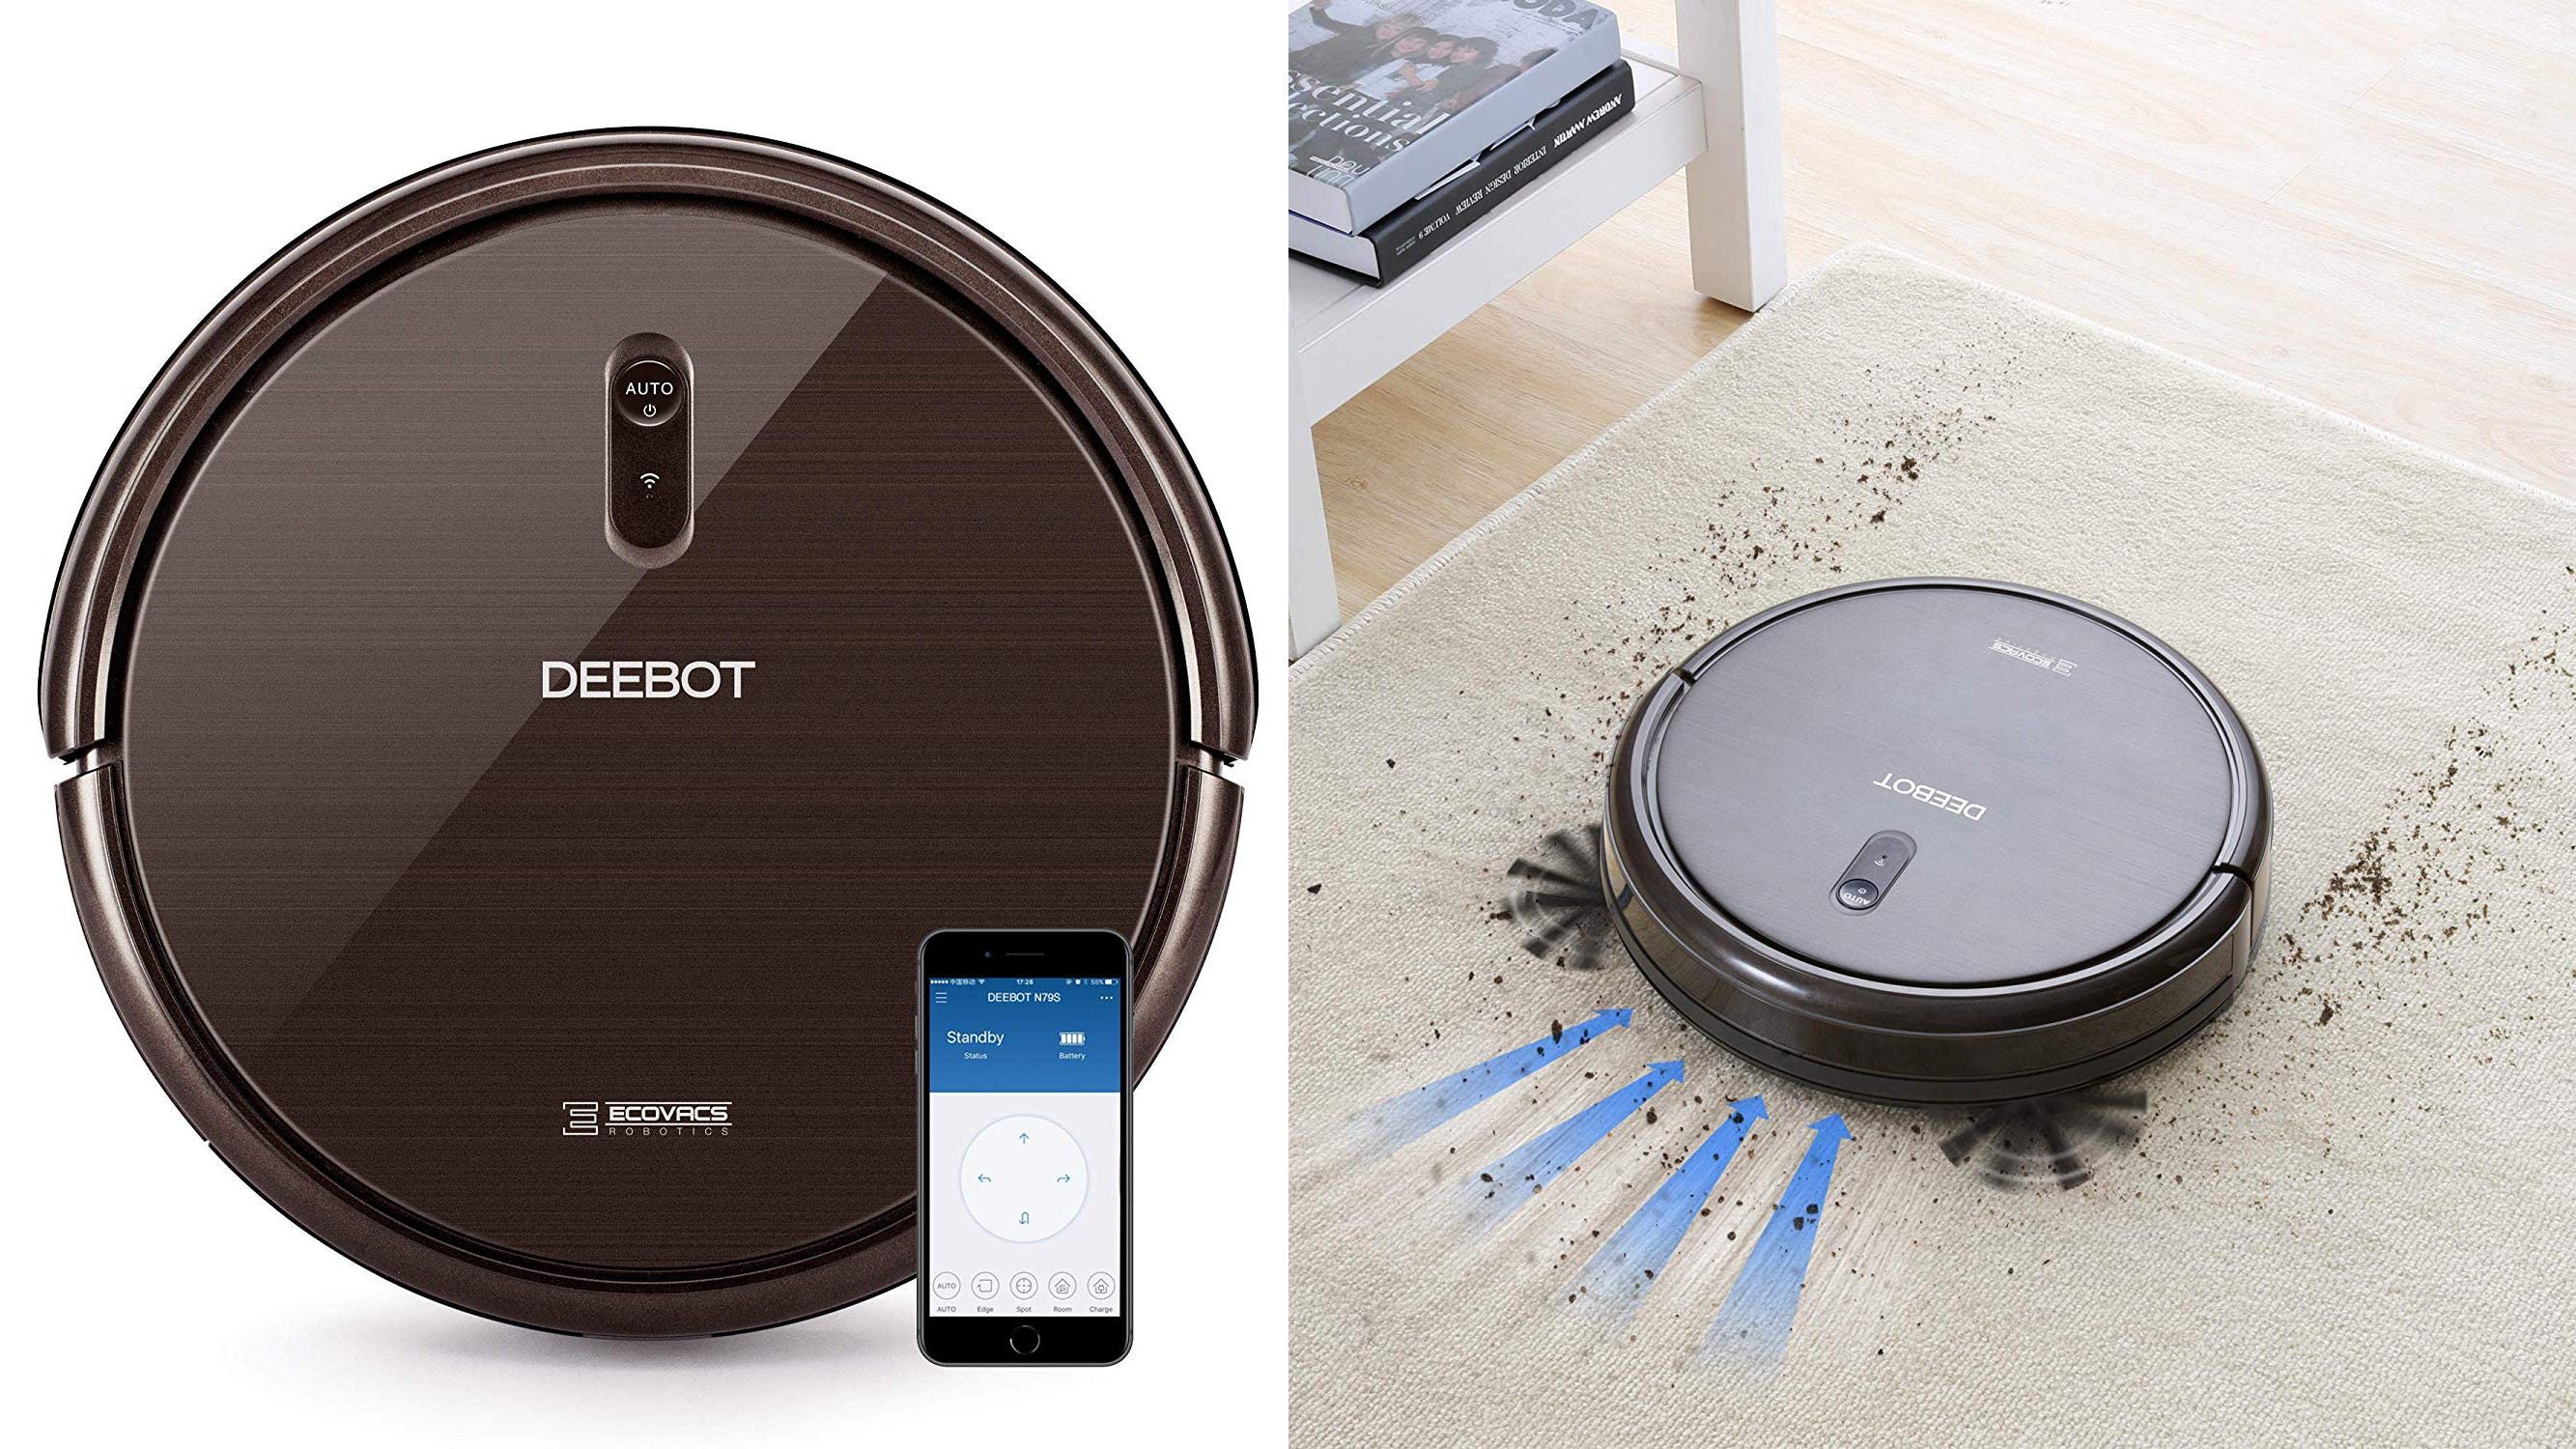 The Ecovacs Deebot N79S robot vacuum is at an amazing low price right now